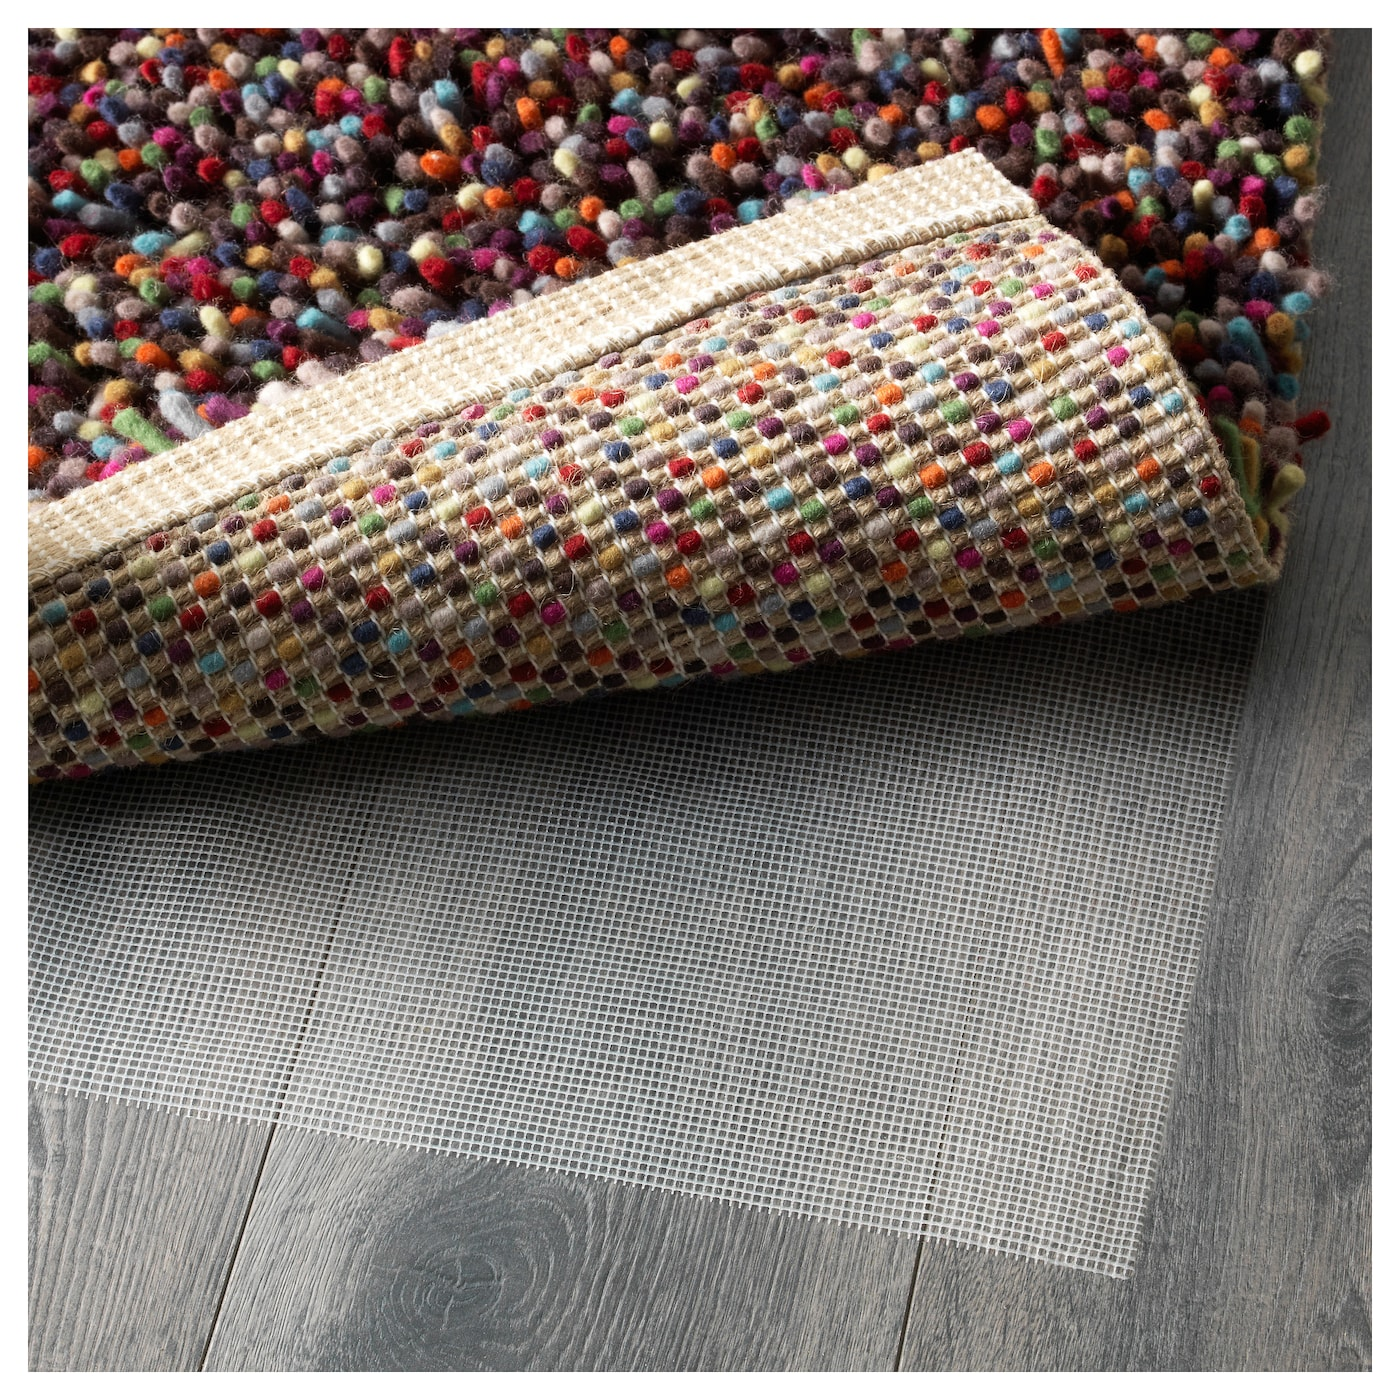 ikea rsted rug high pile matches most colour schemes since the pile has 14 different